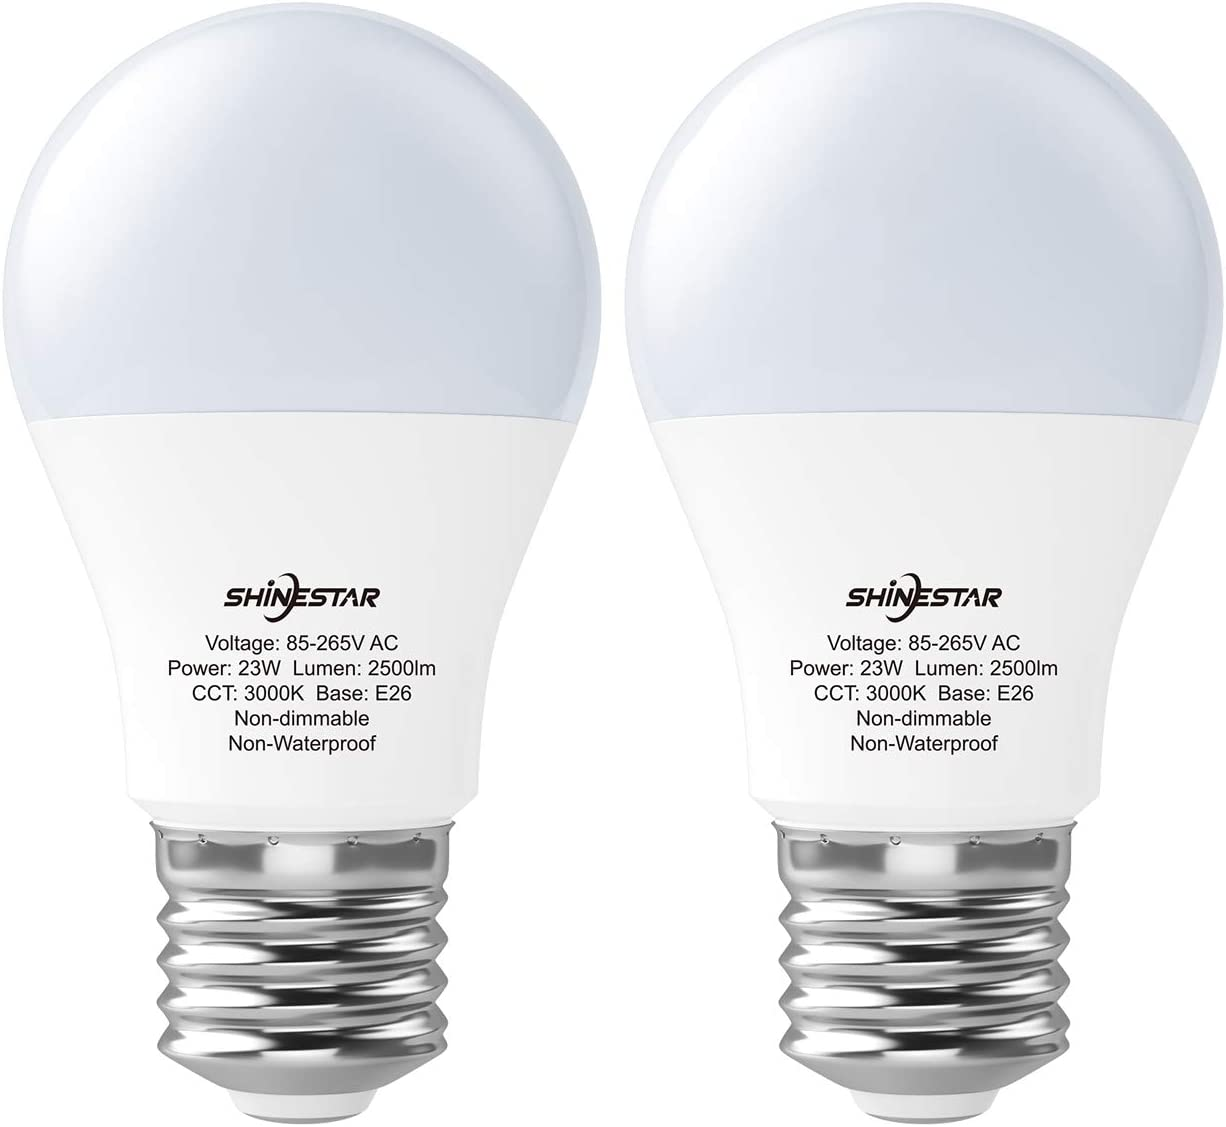 2-Pack A21 150W LED Bulbs, 3000K Soft White LED Light Bulb 23W, E26 Medium Base, Non-dimmable, Not-Intelligent